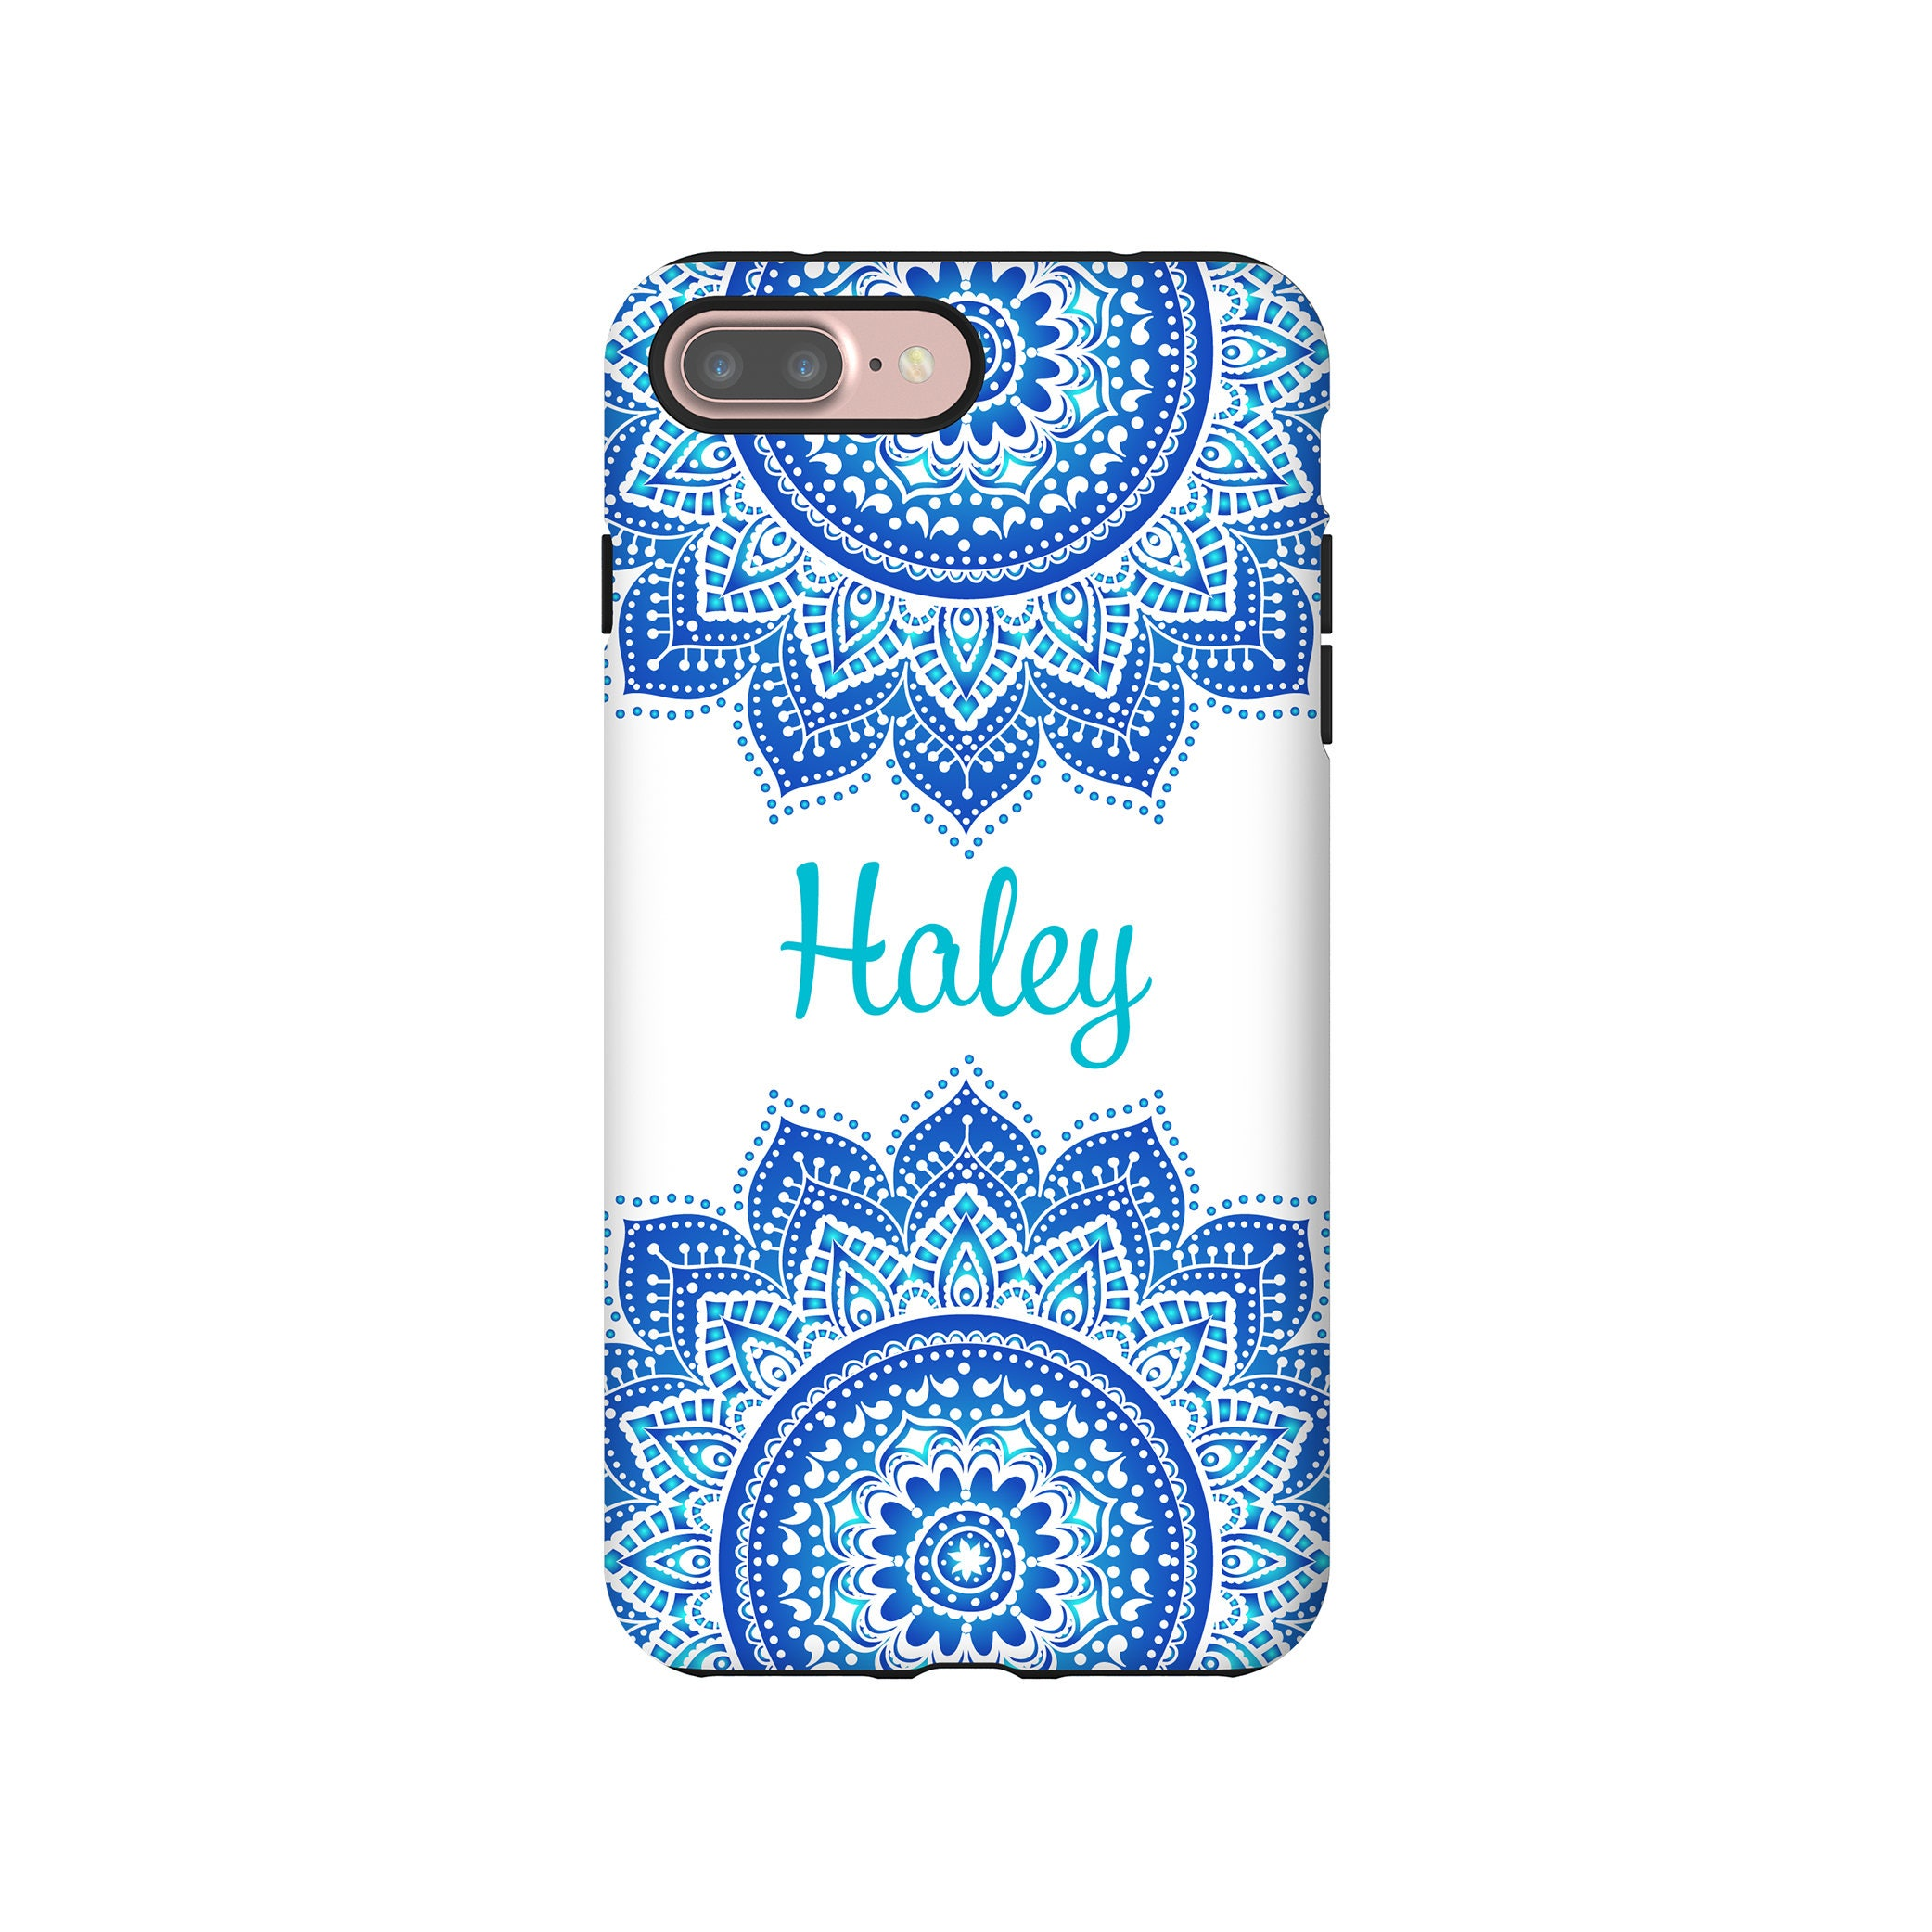 outlet store 040d5 554ce Mandala iPhone 8 Plus case, personalized iPhone 8 case, cute iPhone XS  cases, iPhone 7 Plus/7 case, 6s Plus case/6s case, personalized gift